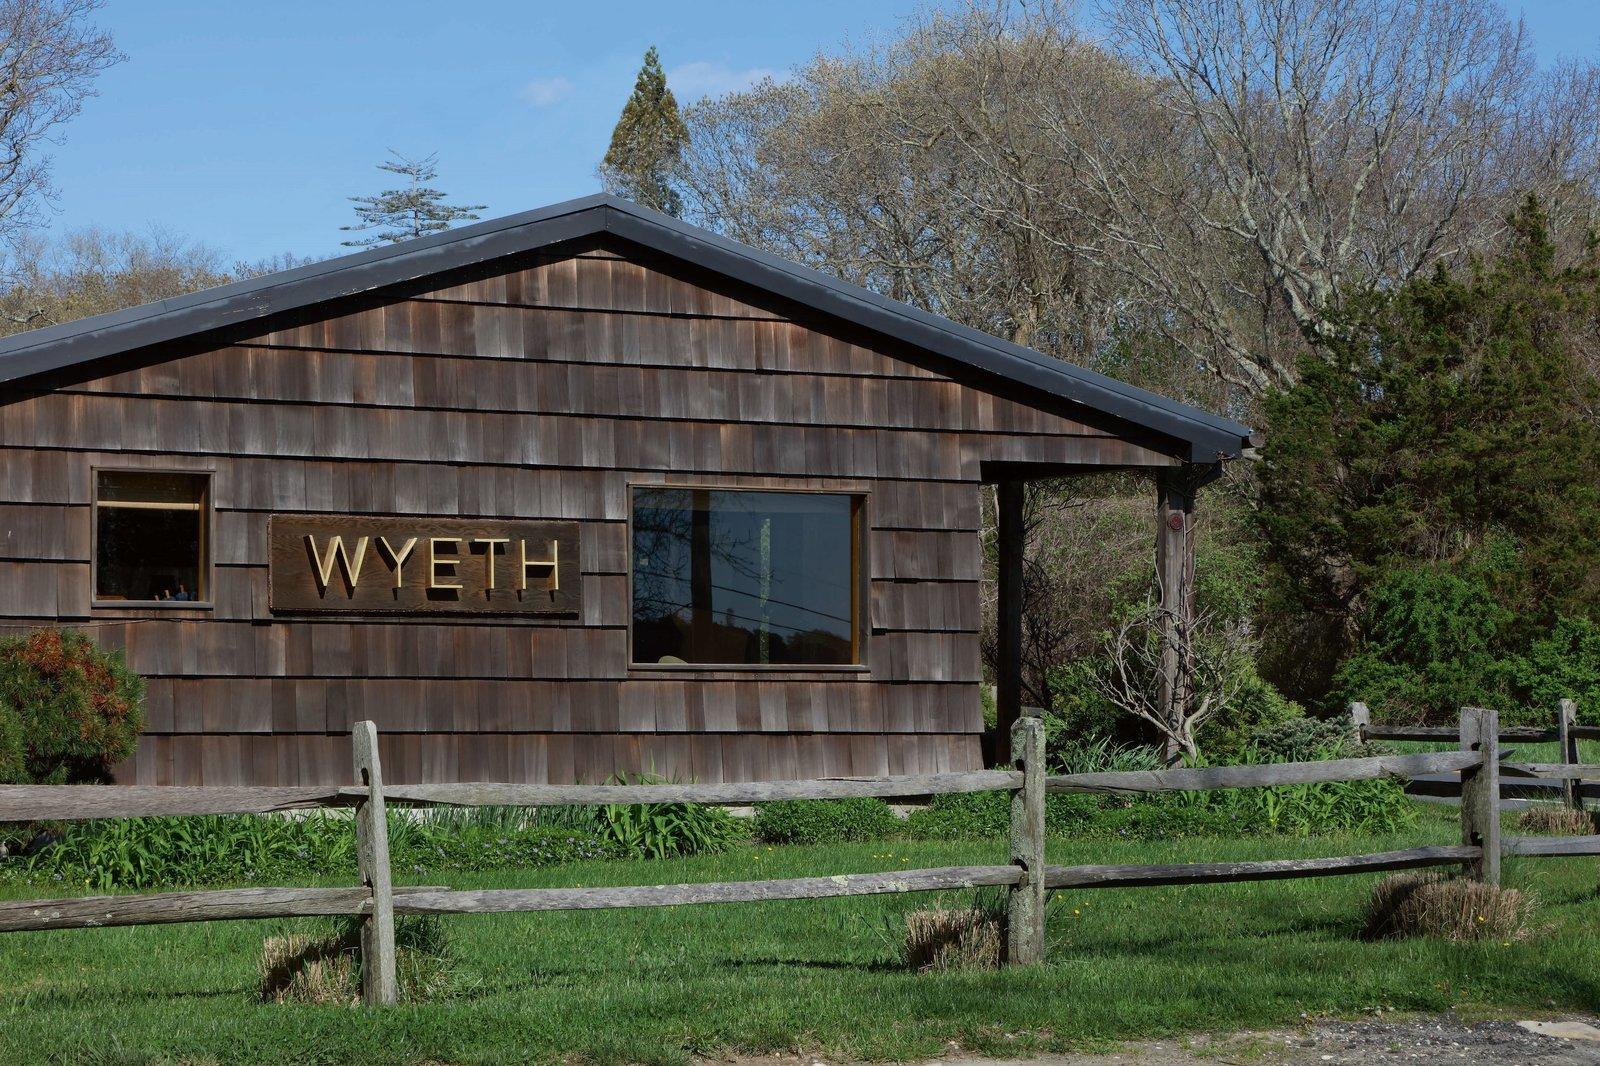 WYETH'S Sagaponack location  Photo 2 of 10 in Next Week Marks Sotheby's Sale of Iconic Design Pieces From WYETH's Coveted Collection